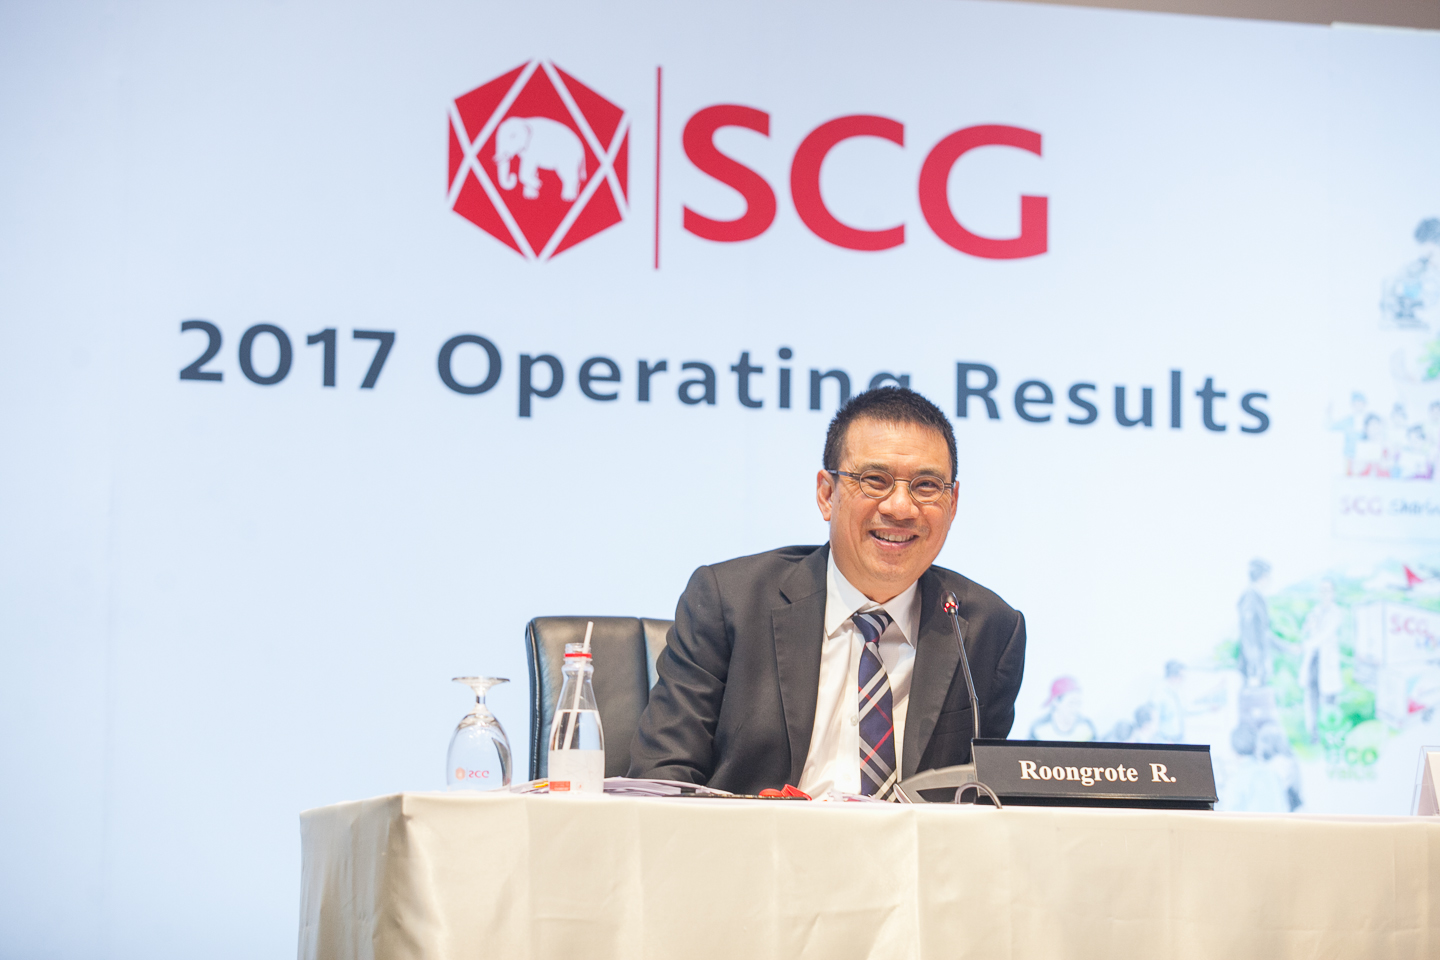 SCG unveils satisfactory operating results in 2017